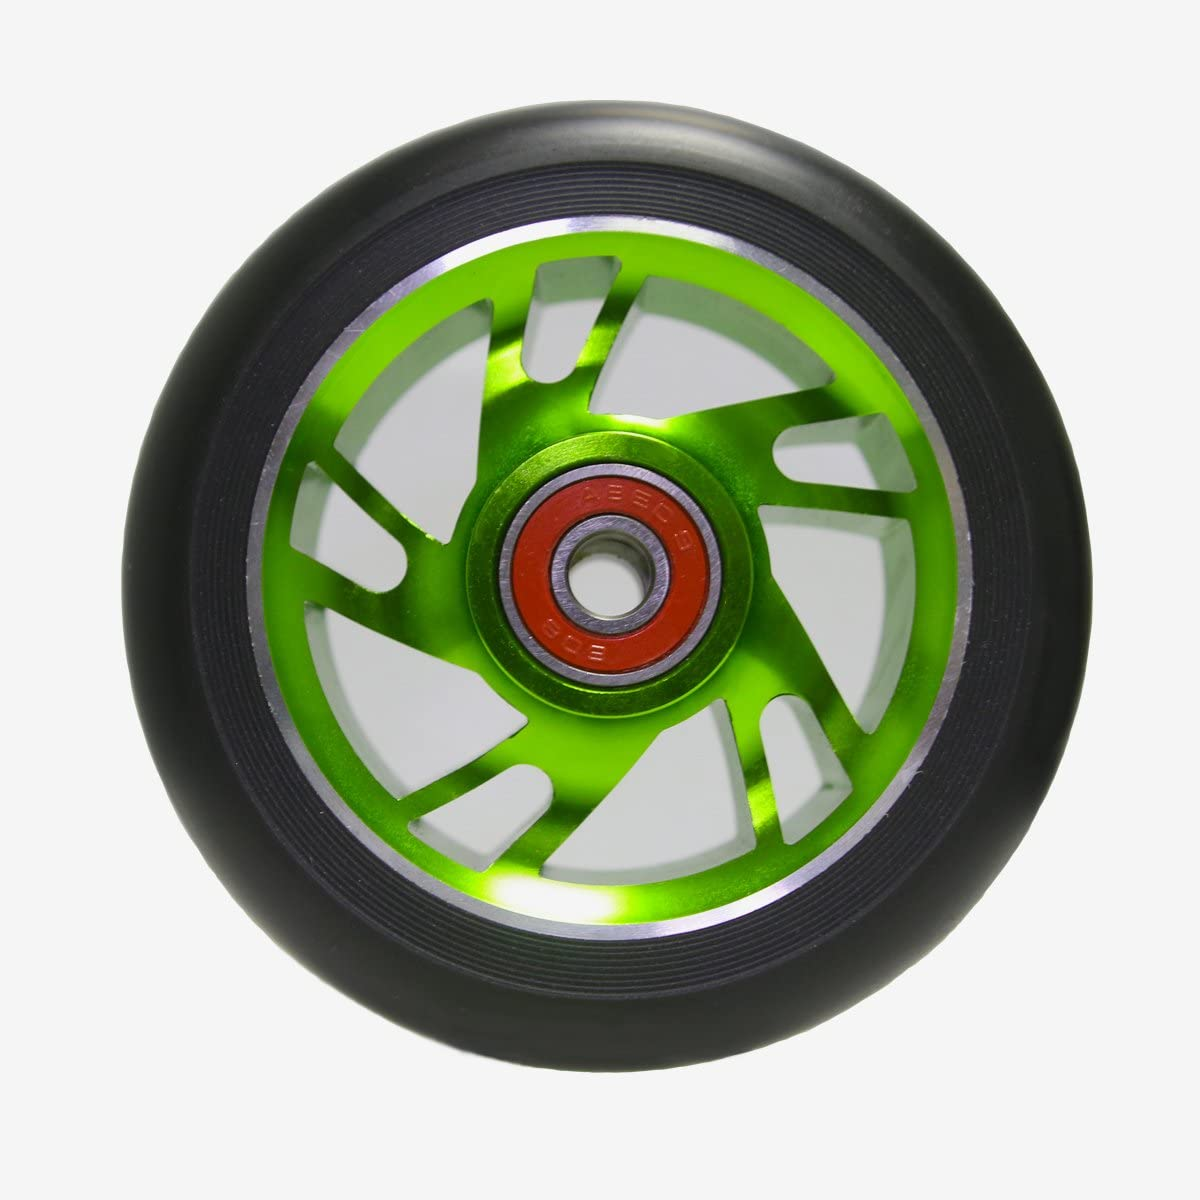 Green Z-FIRST 2Pcs 110mm Pro Stunt Scooter Wheels with ABEC 9 Bearings Fit for MGP//Razor//Lucky Envy//Vokul Pro Scooters Replacement Wheels